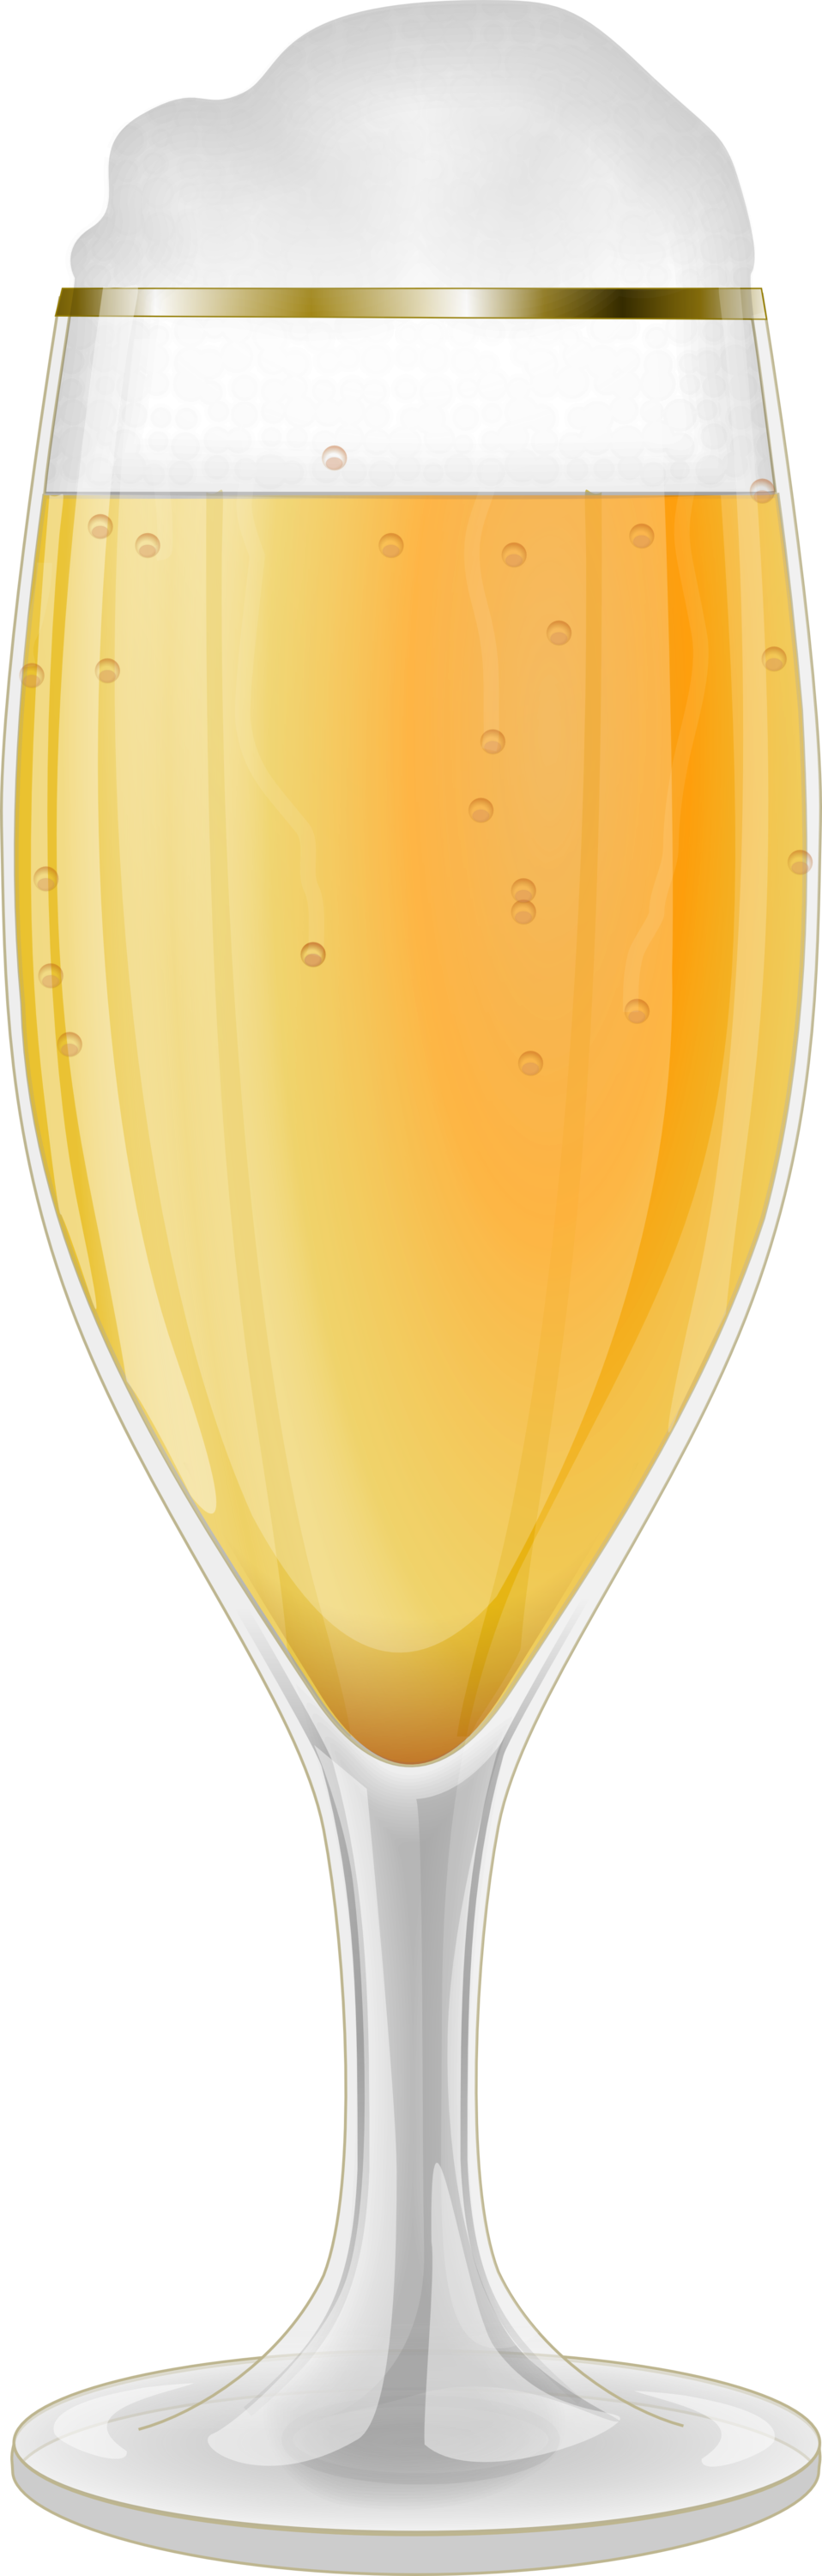 public domain clip art image glass of beer id